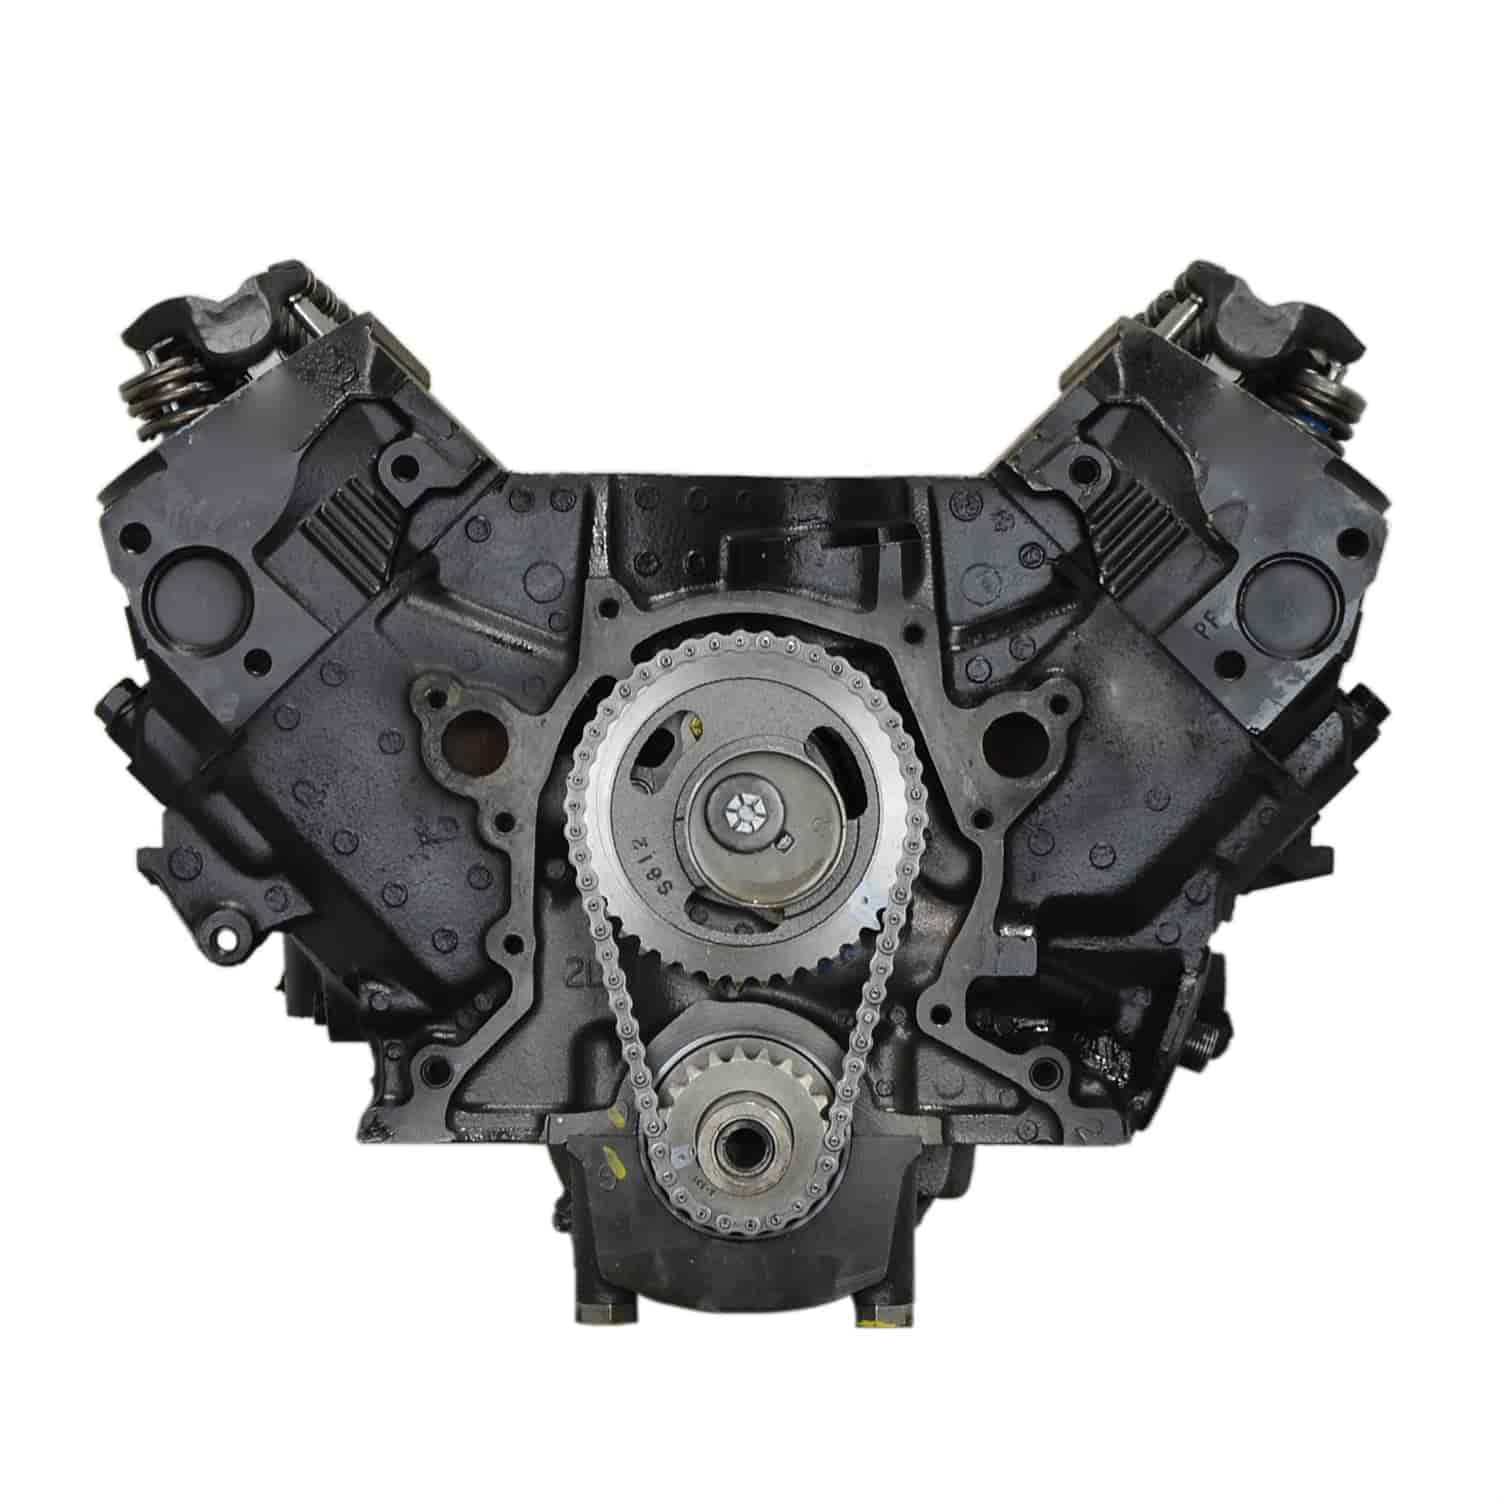 ATK Engines DMA1GTP: Remanufactured Crate Engine For